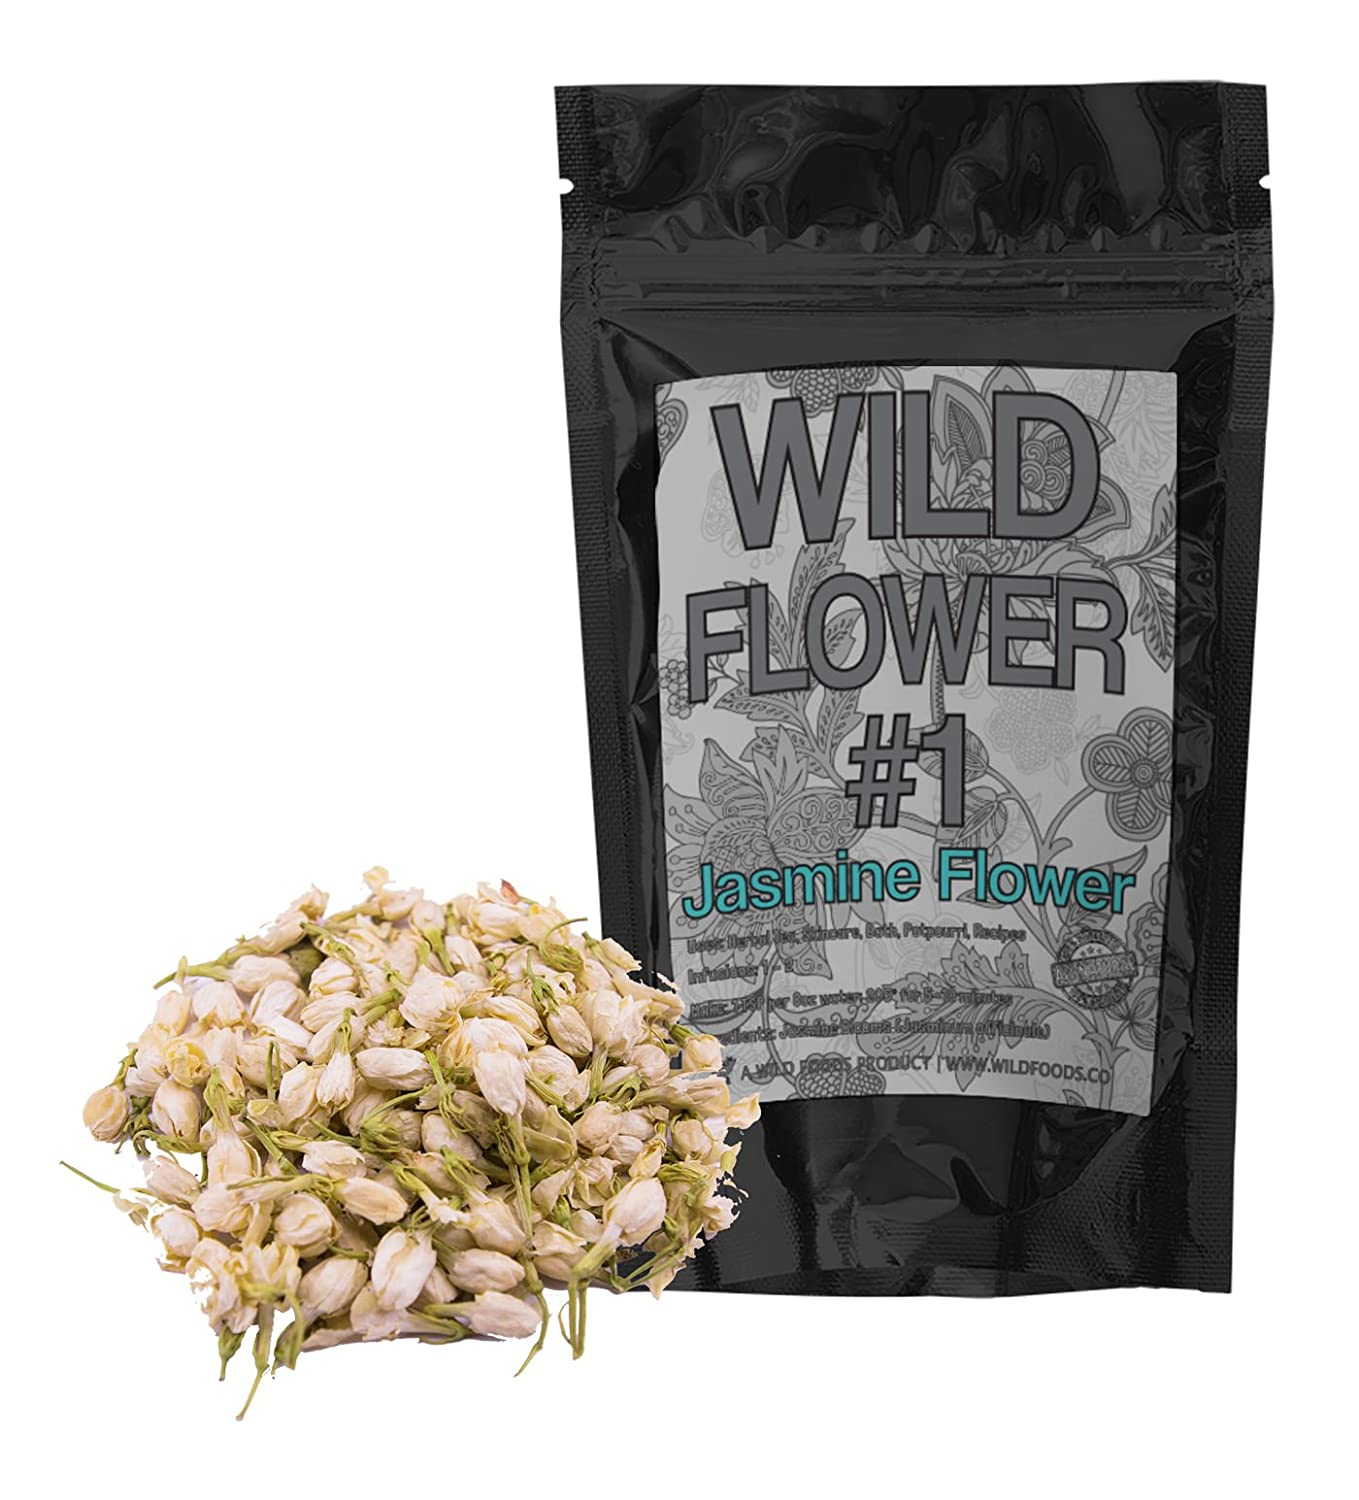 Amazon dried jasmine flowers perfect for homemade tea amazon dried jasmine flowers perfect for homemade tea potpourri bath salts gifts crafts wild flower 1 4 ounce home kitchen dhlflorist Gallery